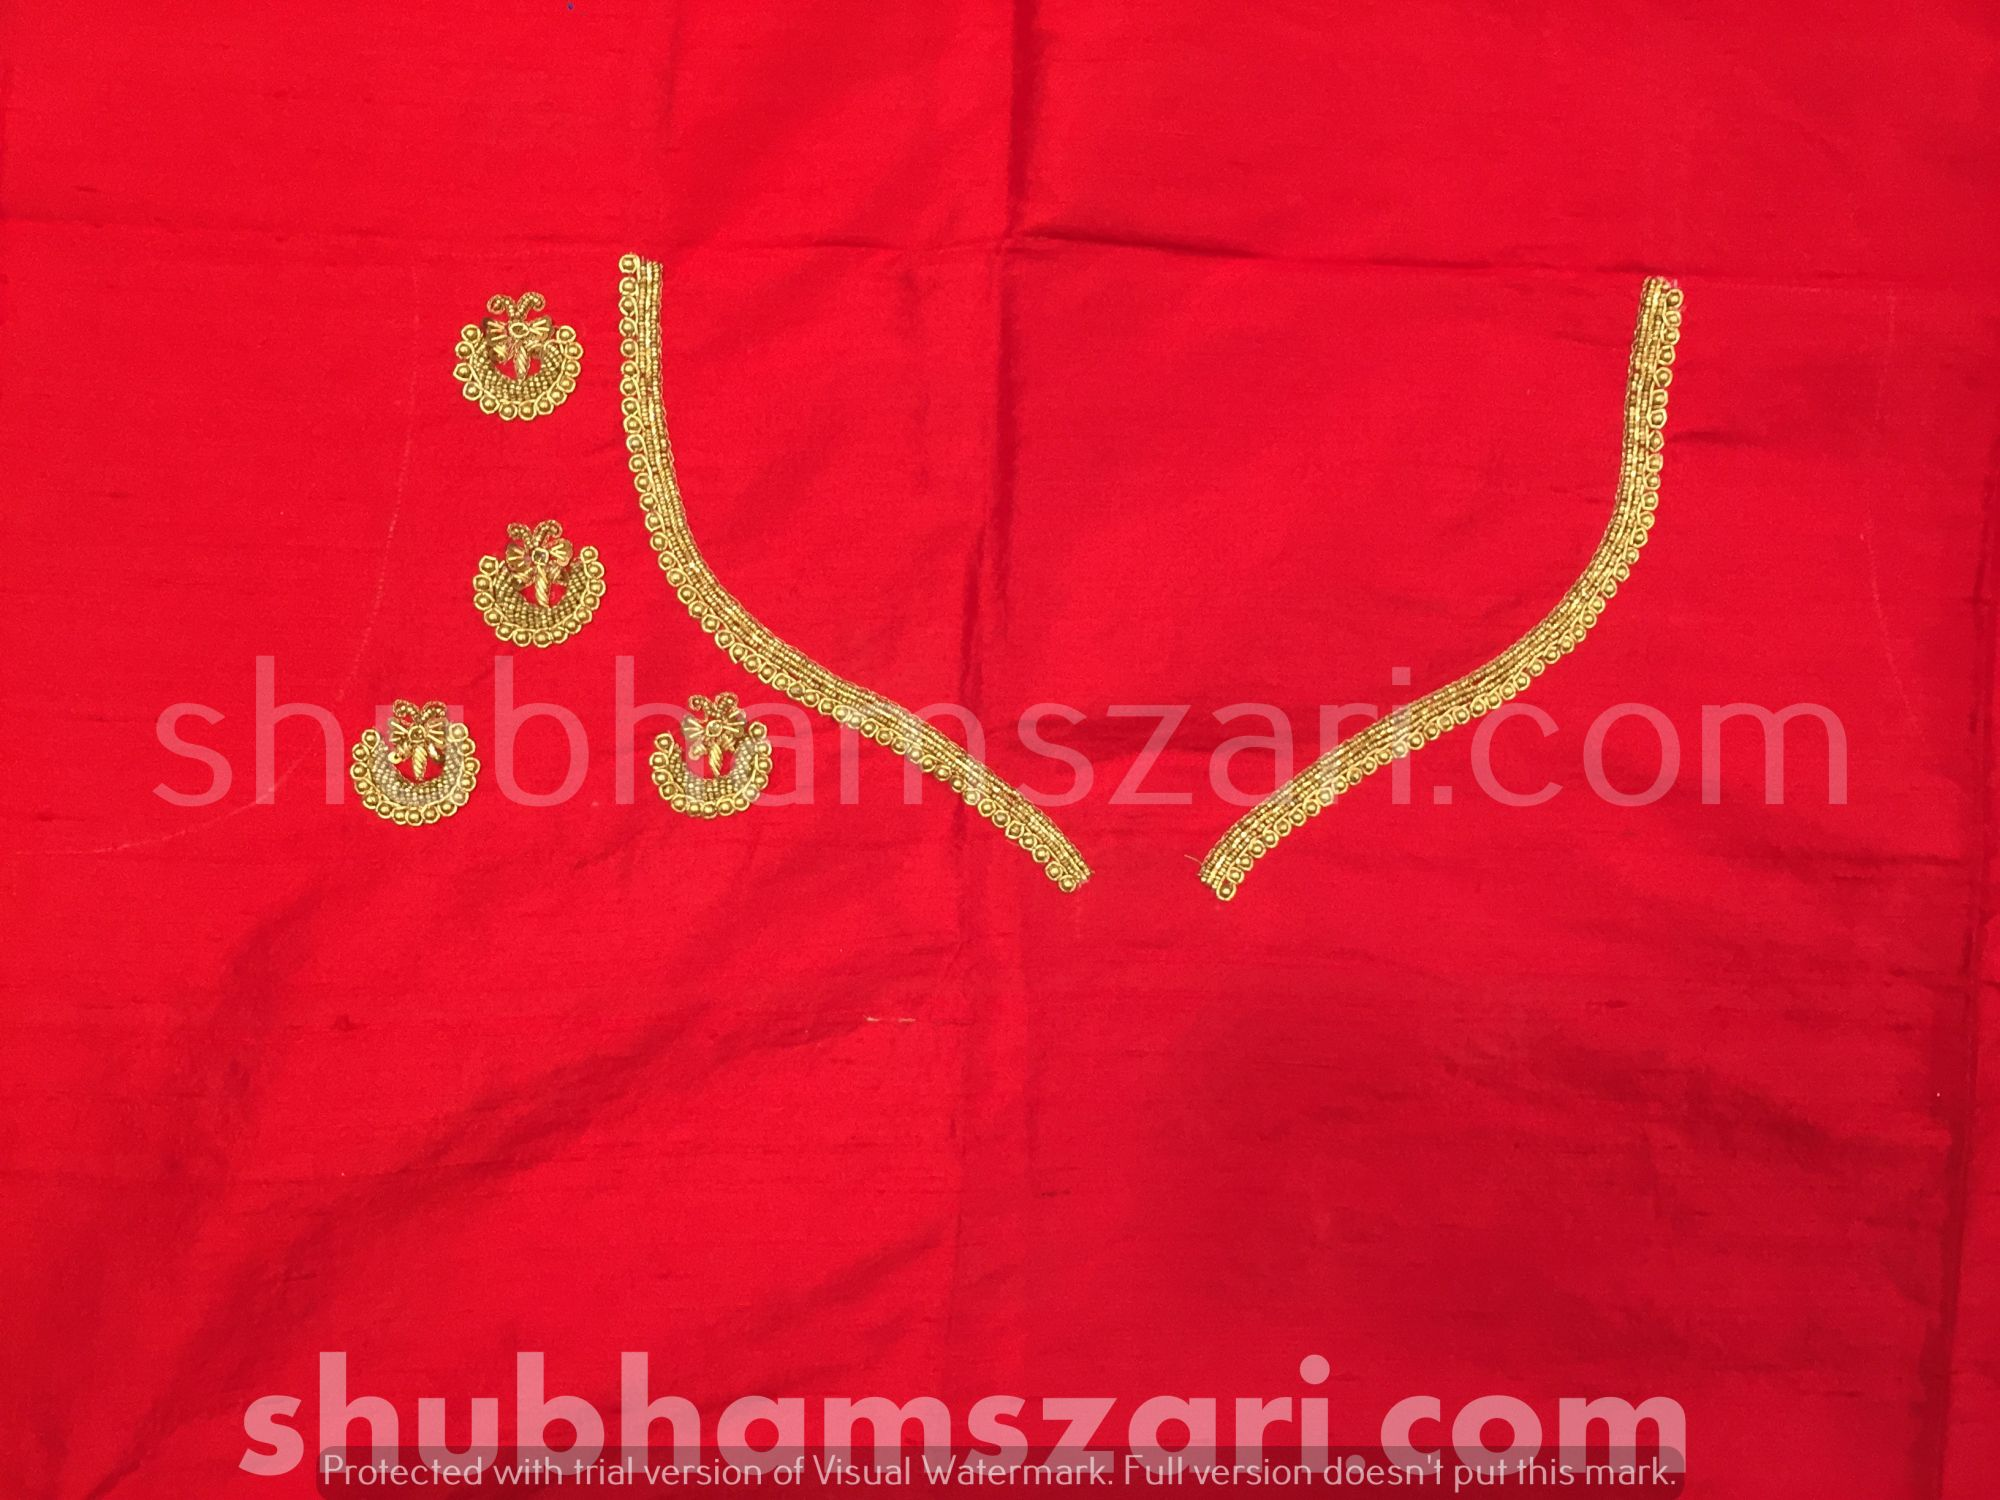 3. Red Beautiful Hand zardozi Work /Tikki work Thread Jari And Hevy Handwork/ Sari Blouse /Saree Top/ For Women